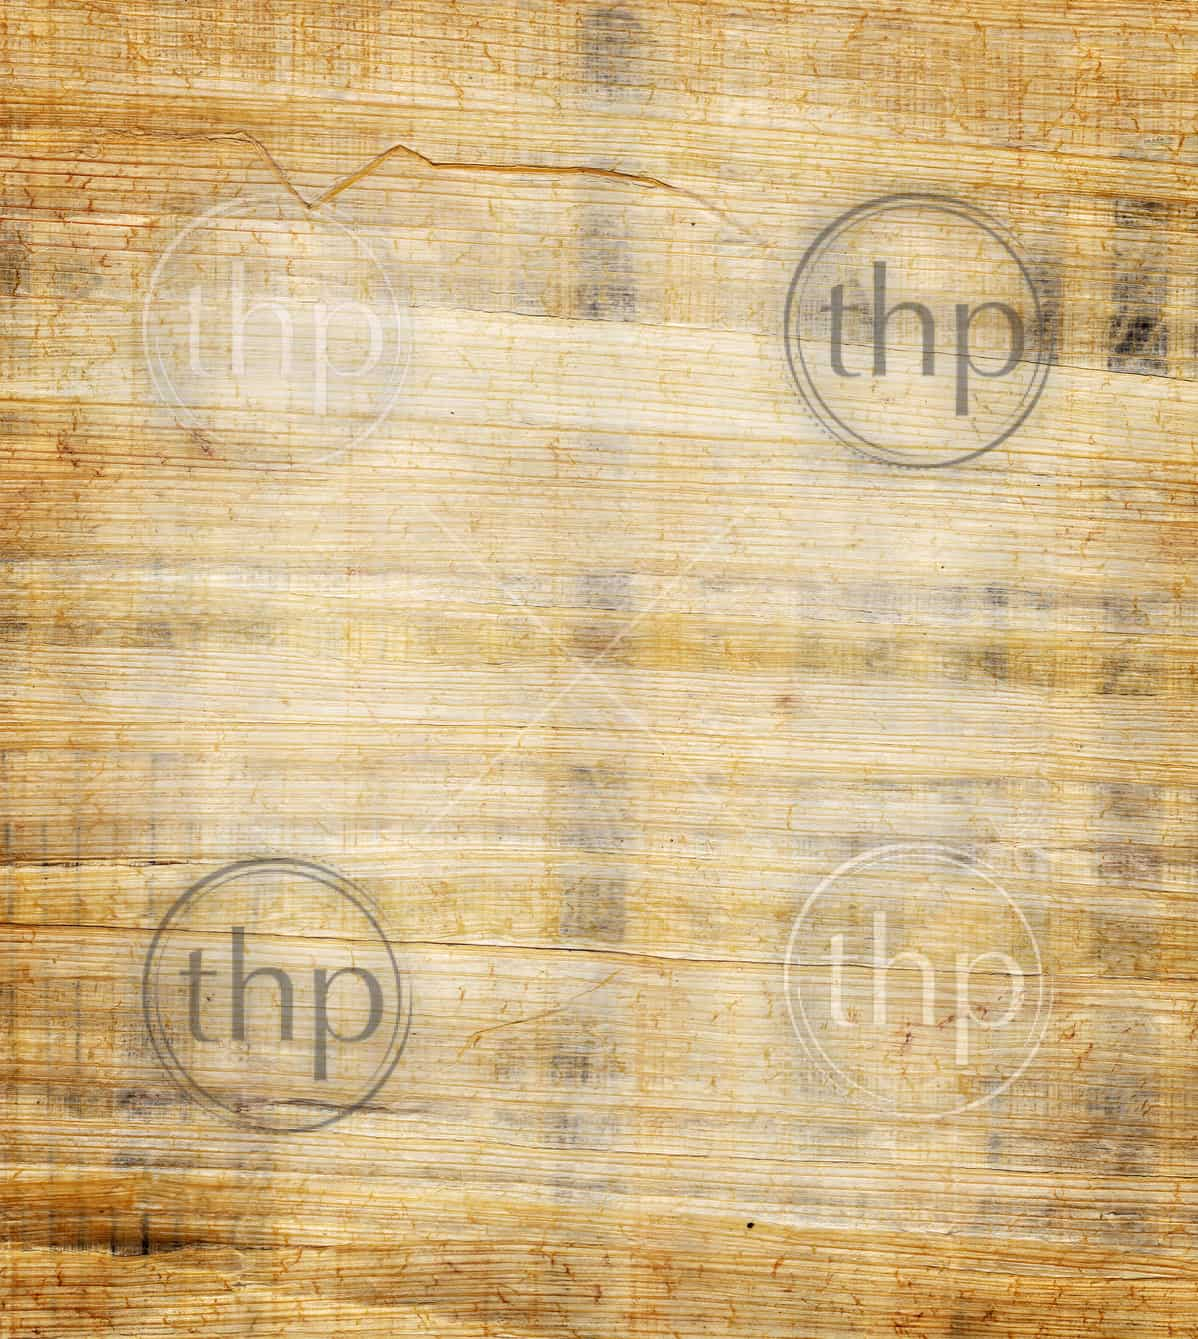 Papyrus paper background texture from Egypt